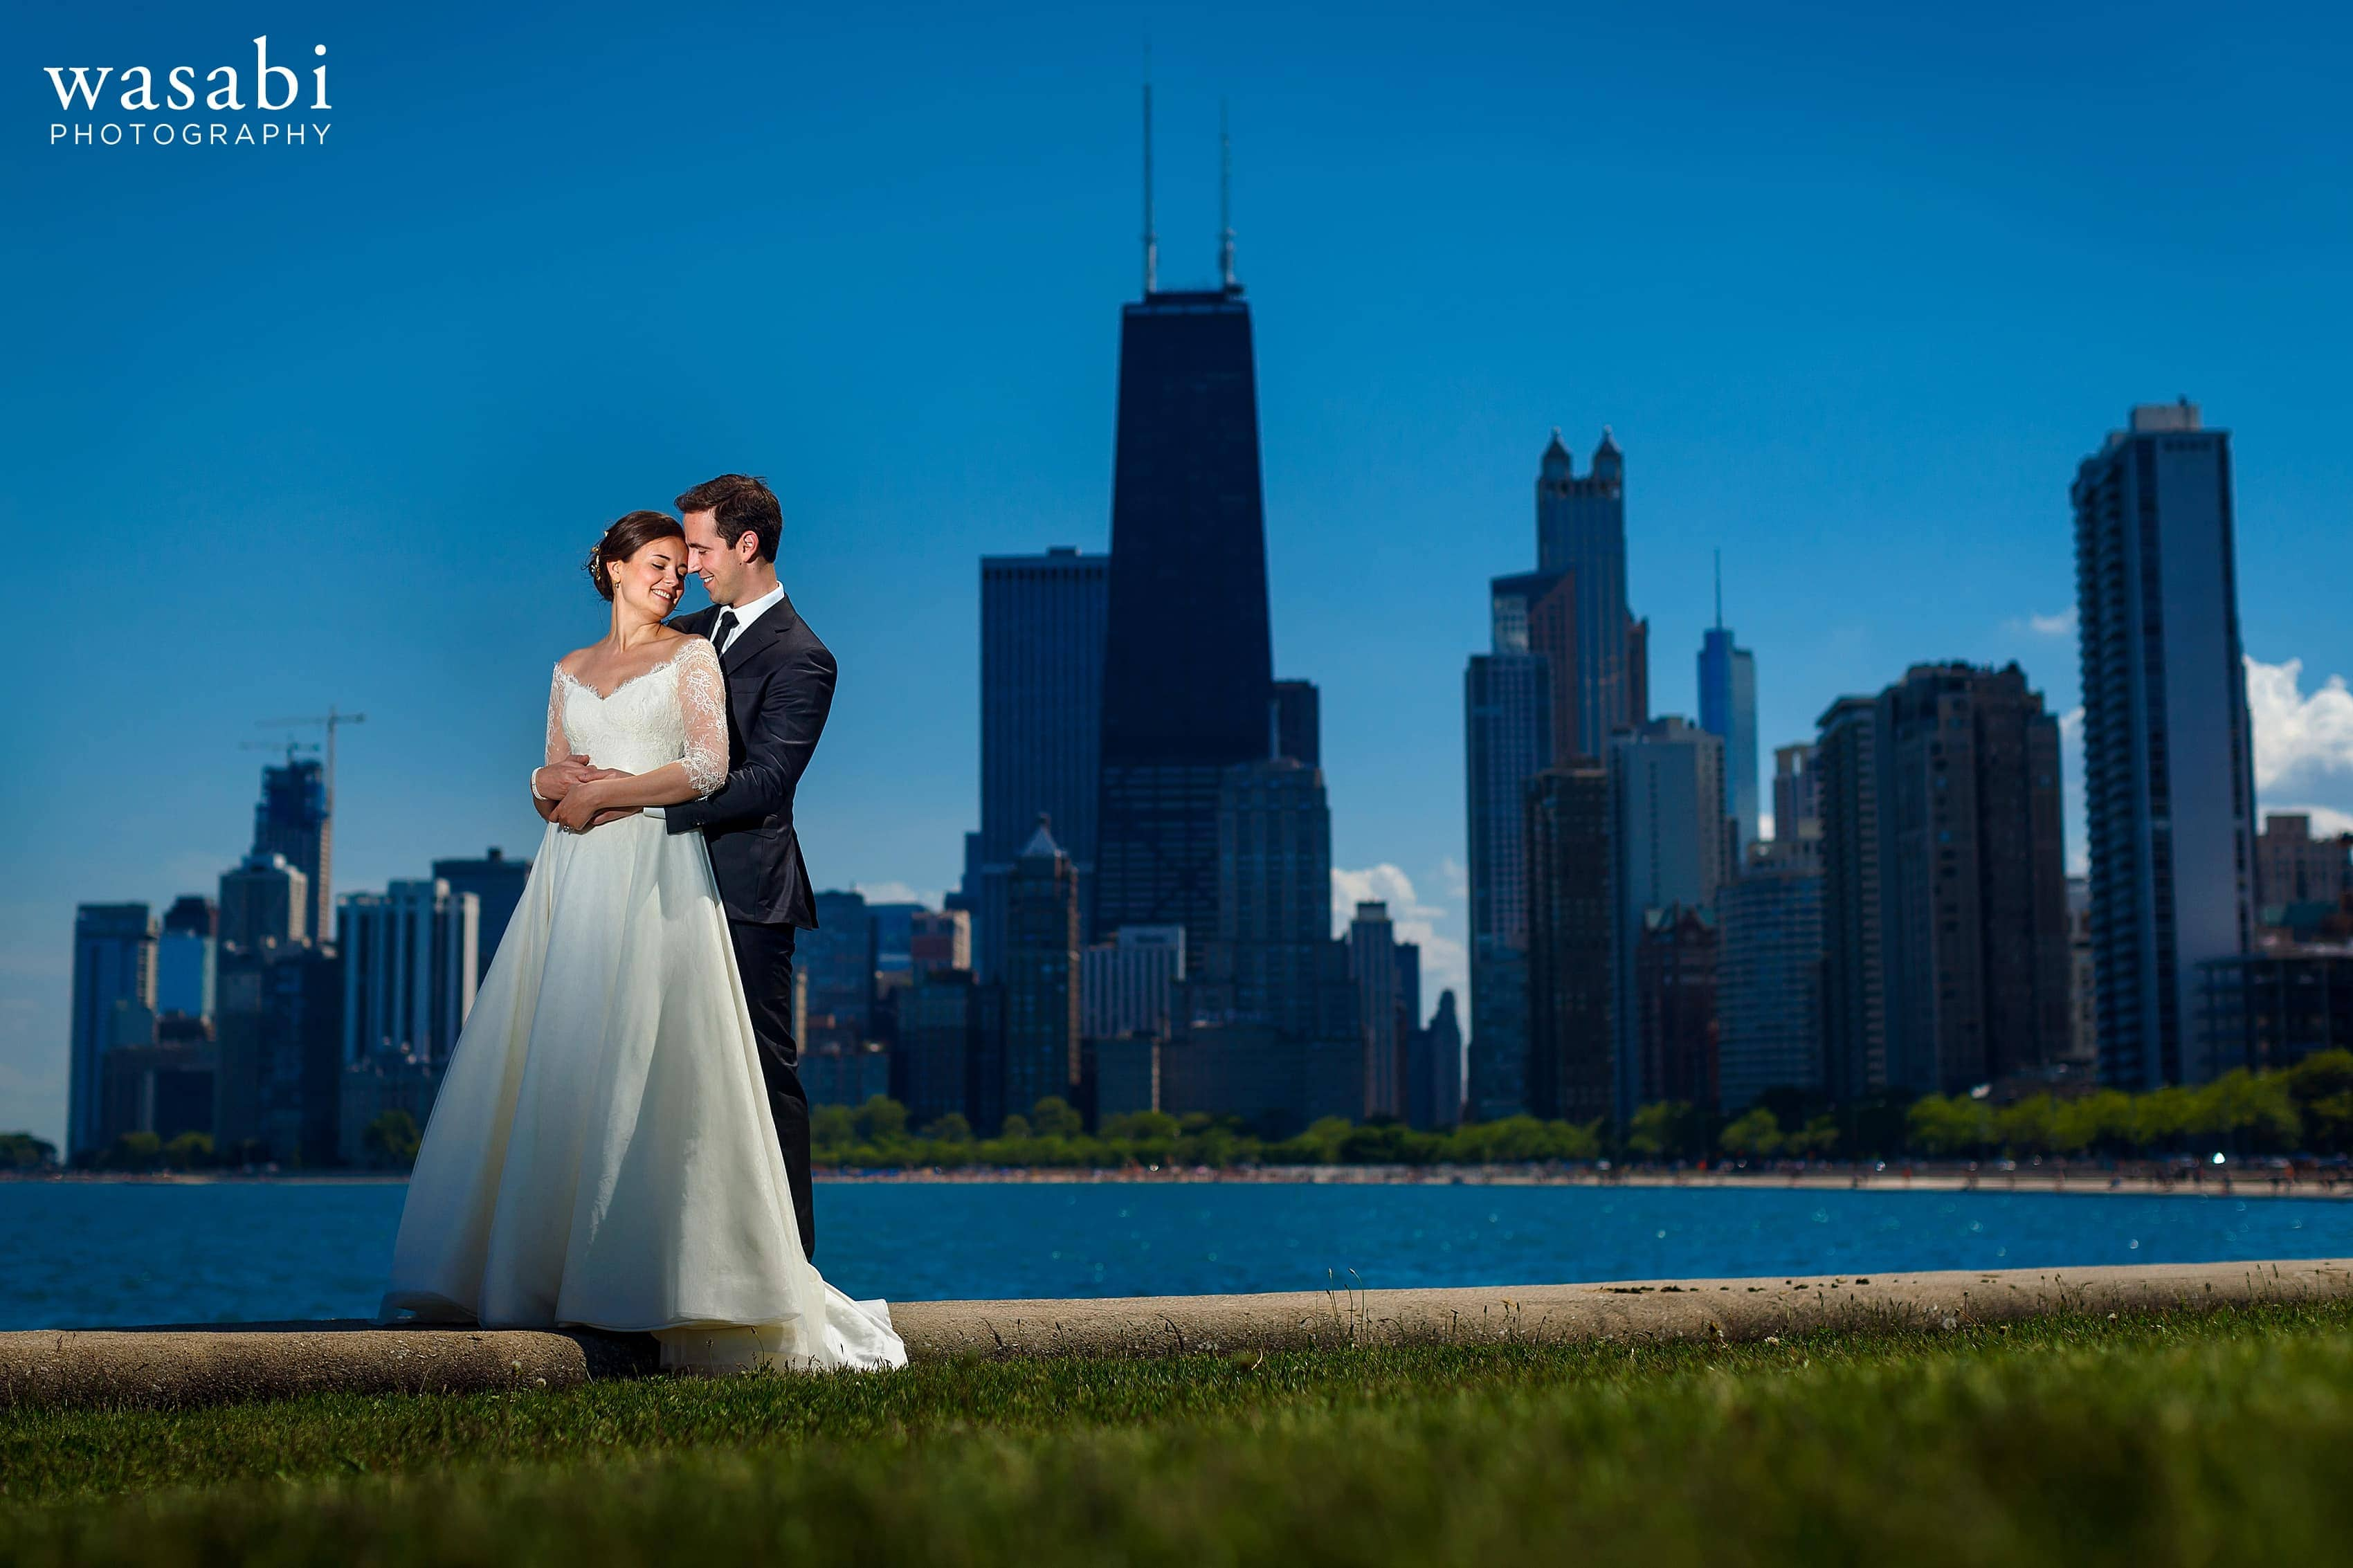 Zoe-and-Justin-pose-for-a-lit-portrait-at-North-Avenue-Beach-with-the-Chicago-skyline-in-the-background-on-their-wedding-day-13